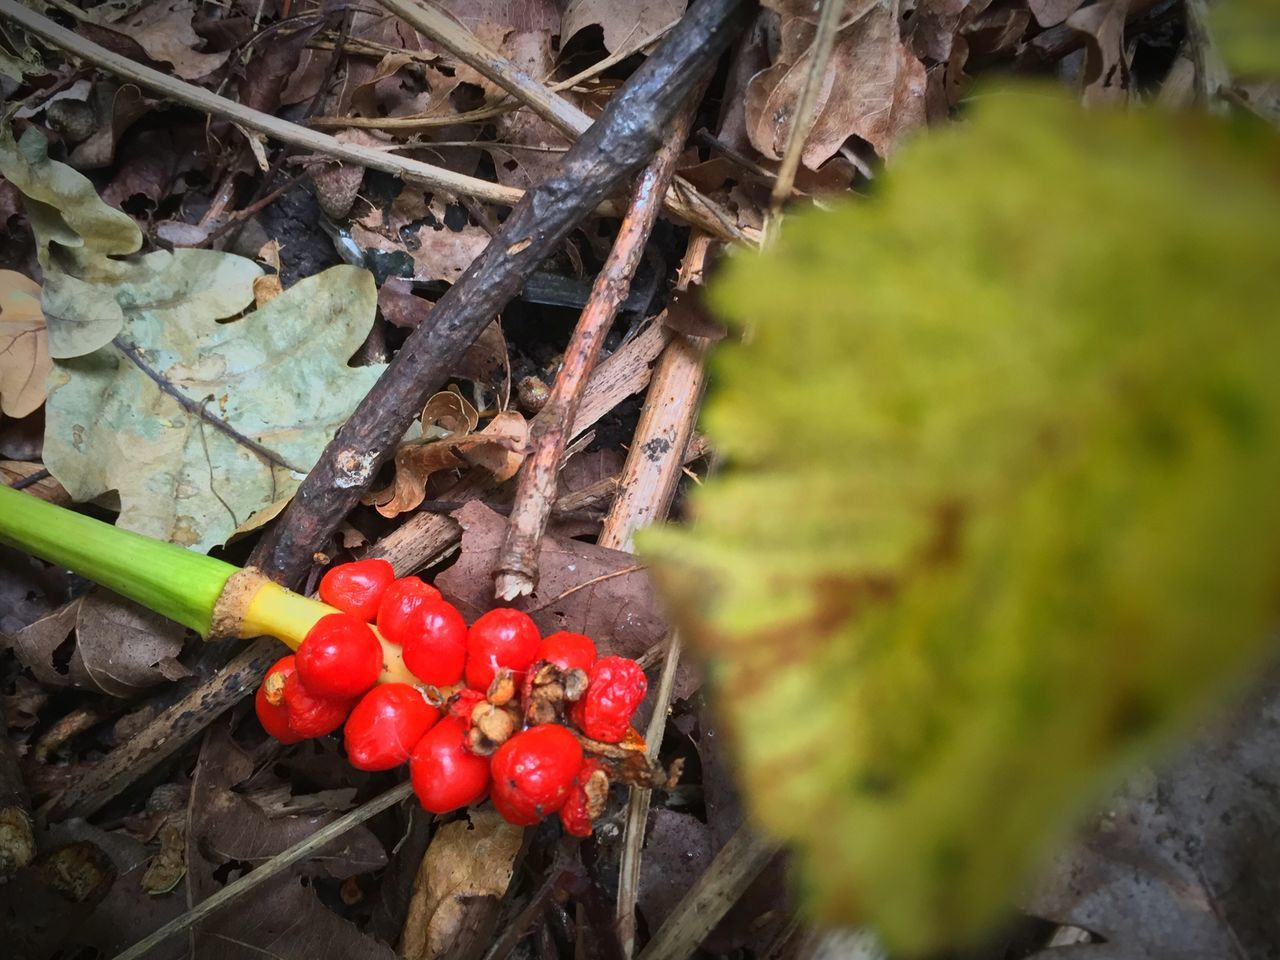 growth, red, food and drink, green color, nature, leaf, plant, day, outdoors, close-up, no people, freshness, food, fruit, tree, beauty in nature